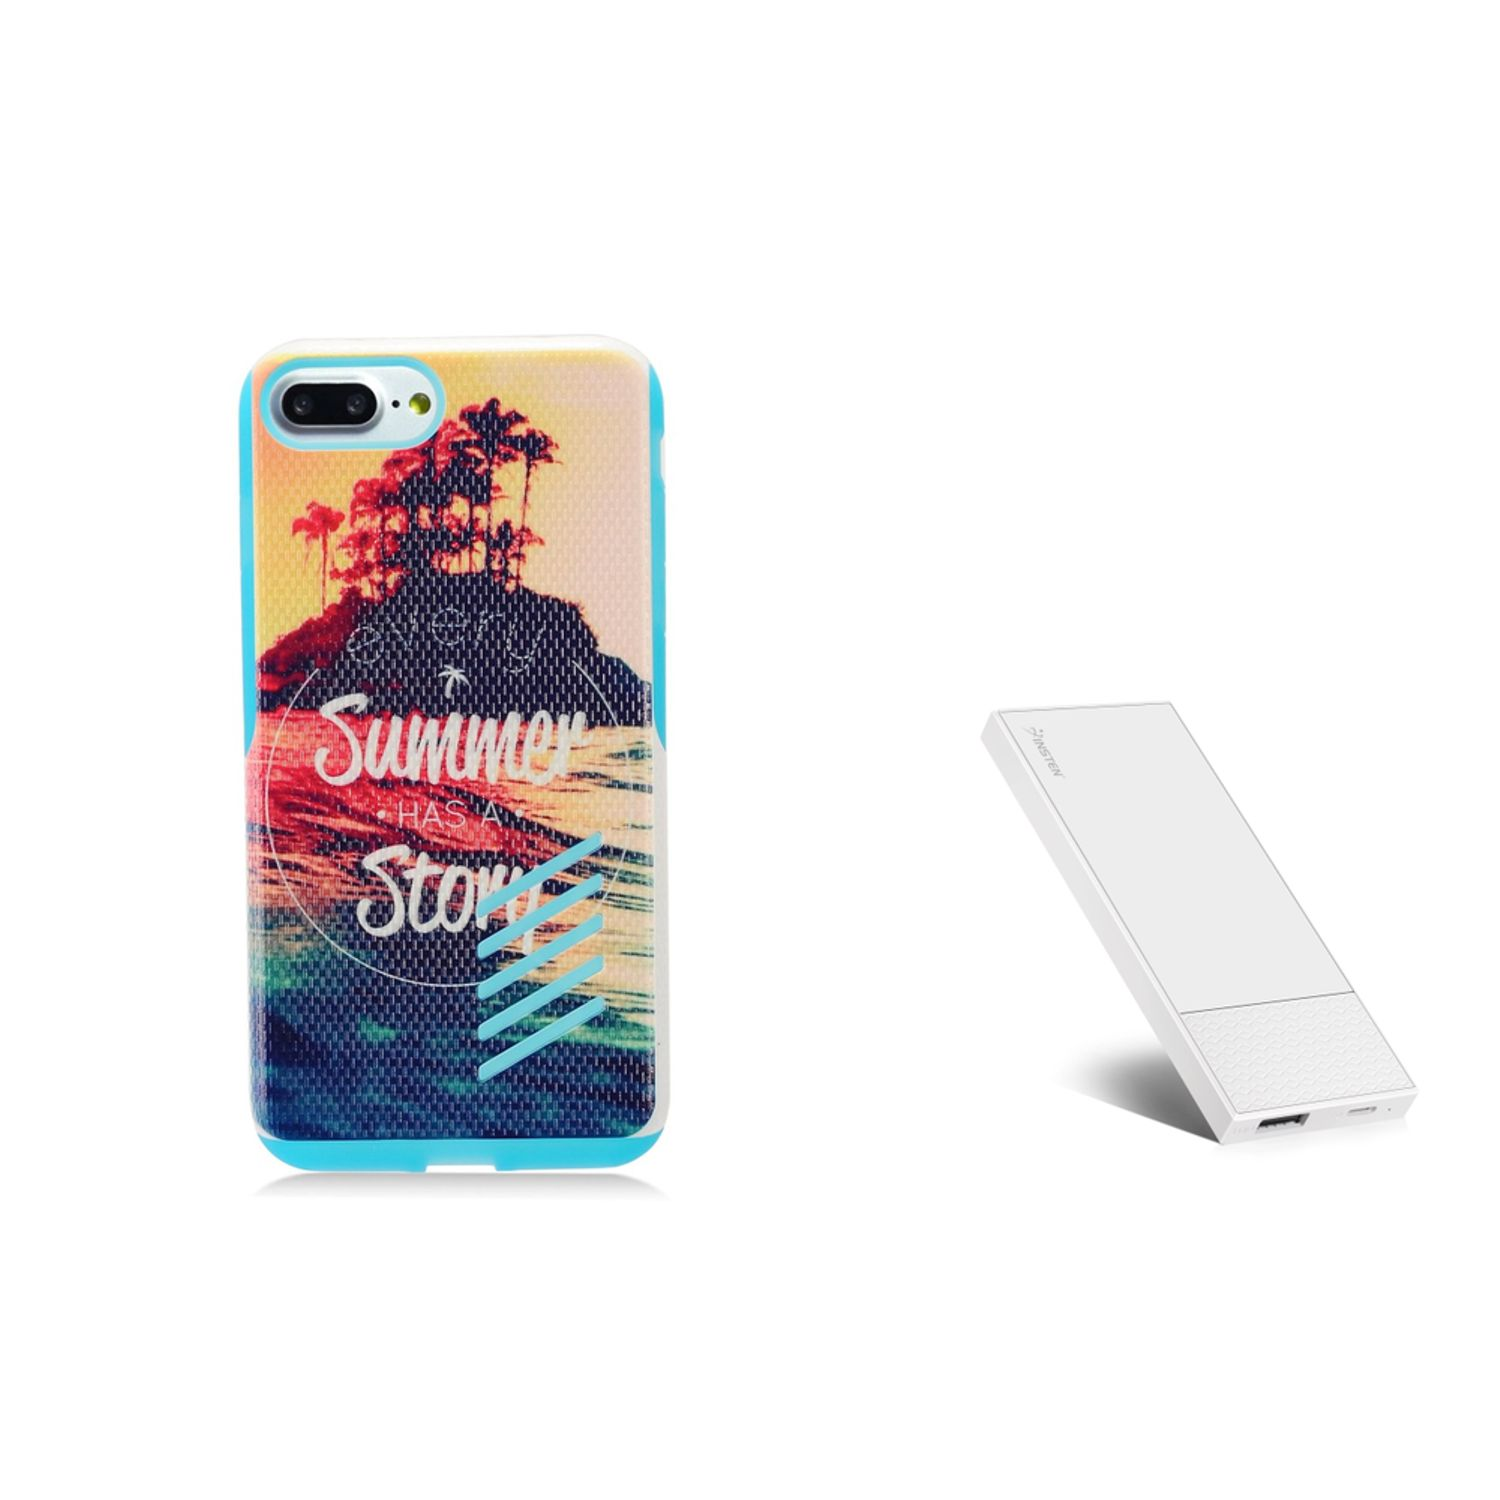 Insten Summer Story Hard Hybrid TPU Cover Case for Apple iPhone 8 Plus / iPhone 7 Plus- Colorful (+ Ultra Thin 4000mah Portable Charger) (2-in-1 Accessory Bundle)